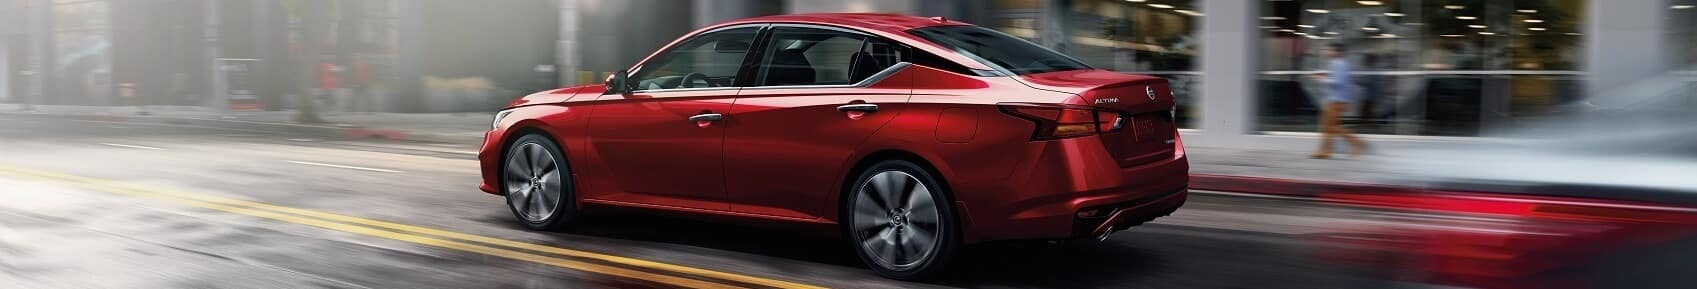 2021 Nissan Altima Safety Review